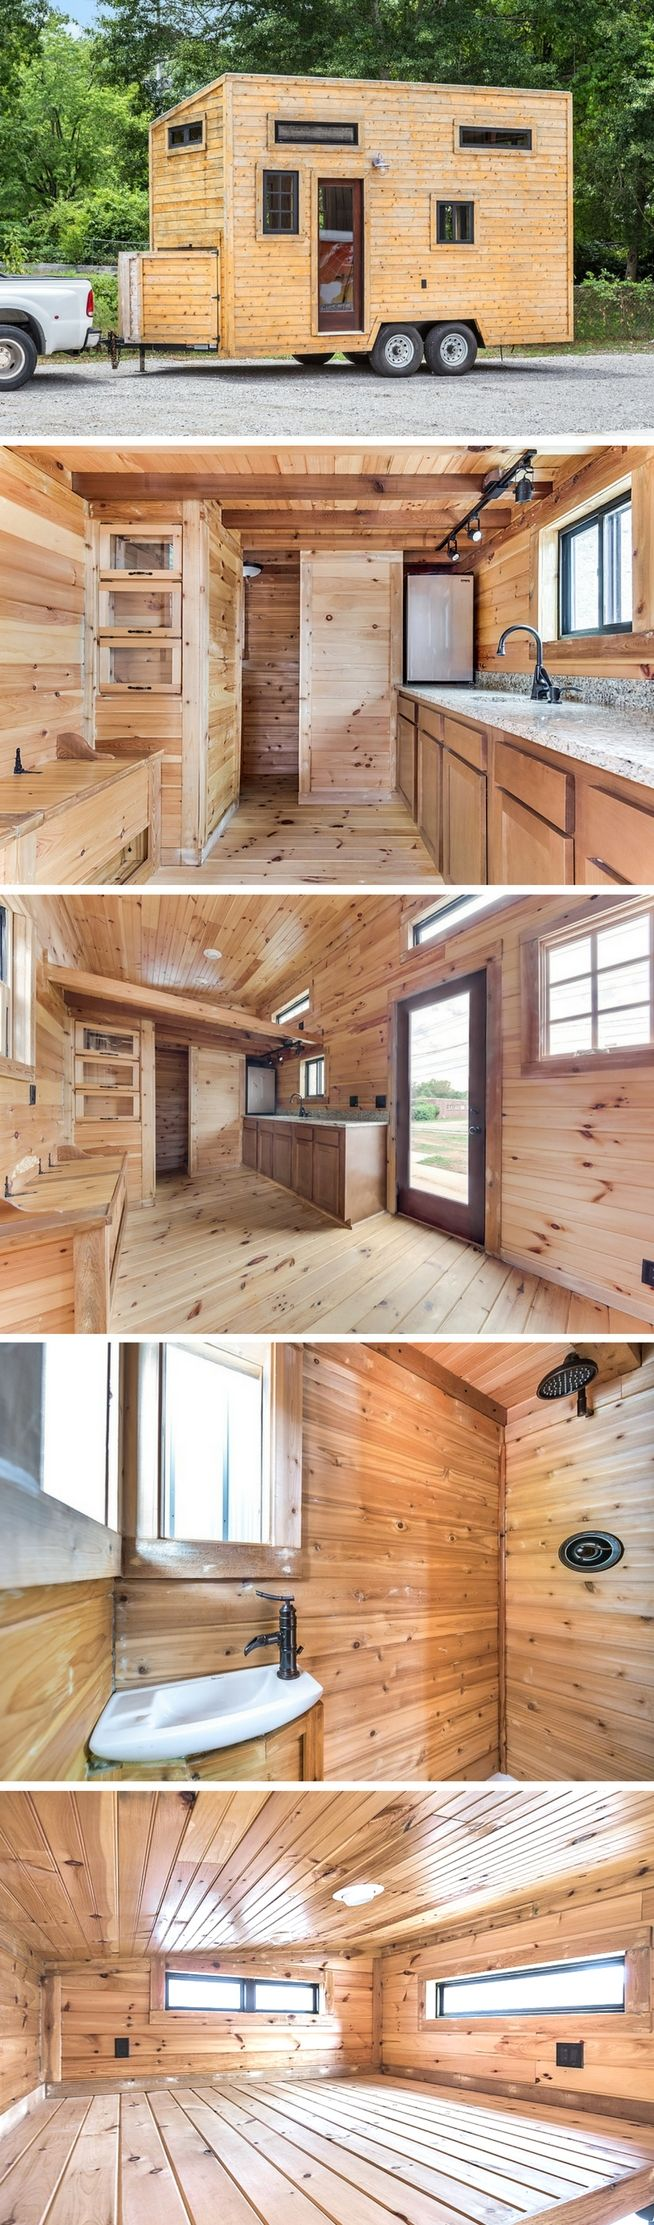 144 Square Feet 1431 Best Tiny Houses Images On Pinterest Tiny House Living